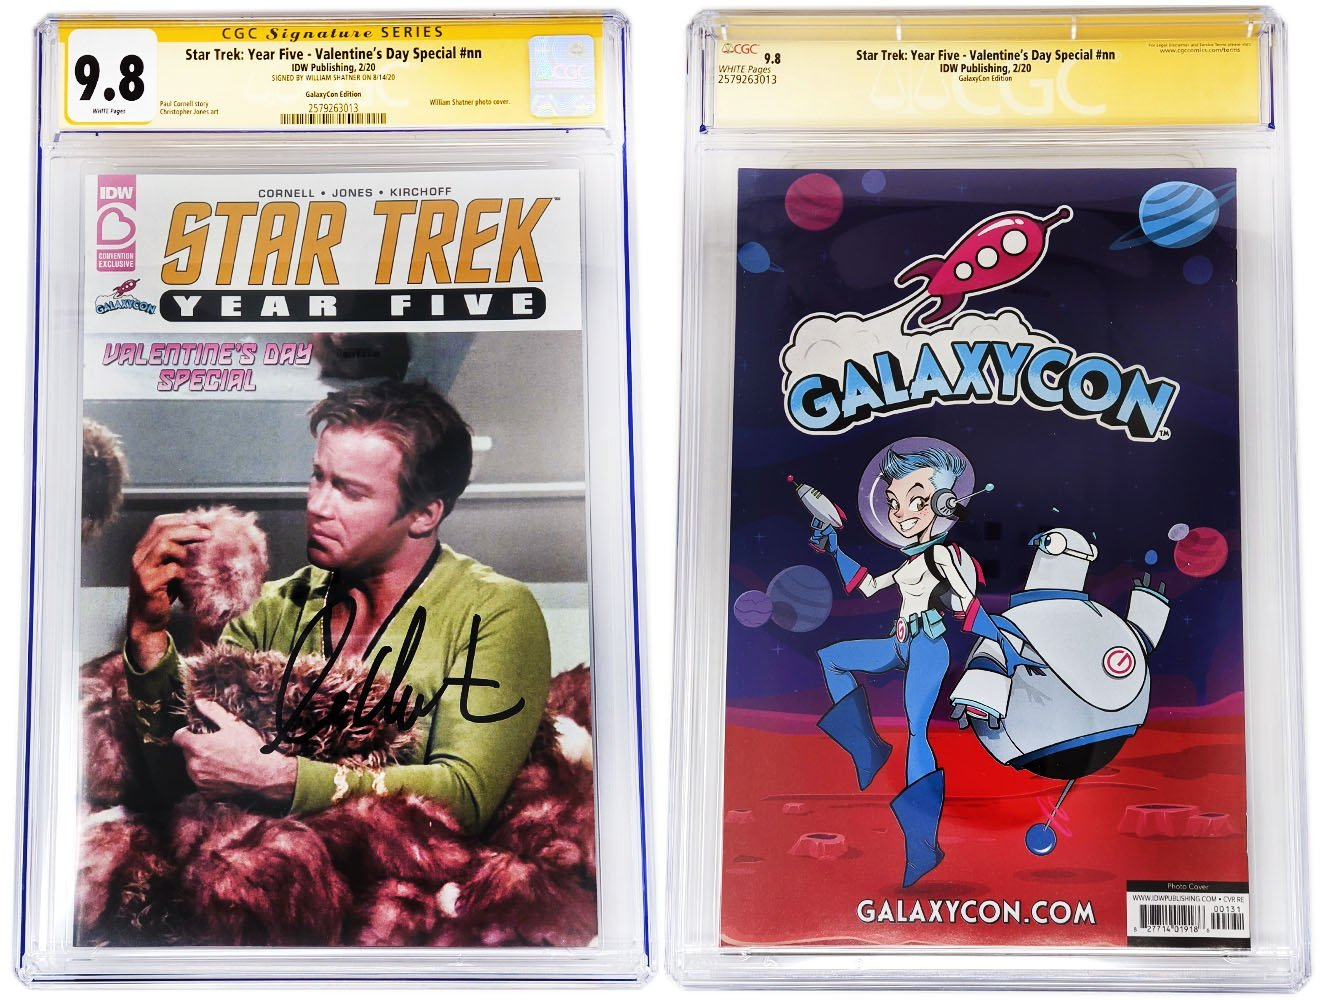 William Shatner Signed Star Trek: Year Five Valentine's Day Special Sealed GalaxyCon Exclusive CGC Certified GalaxyCon